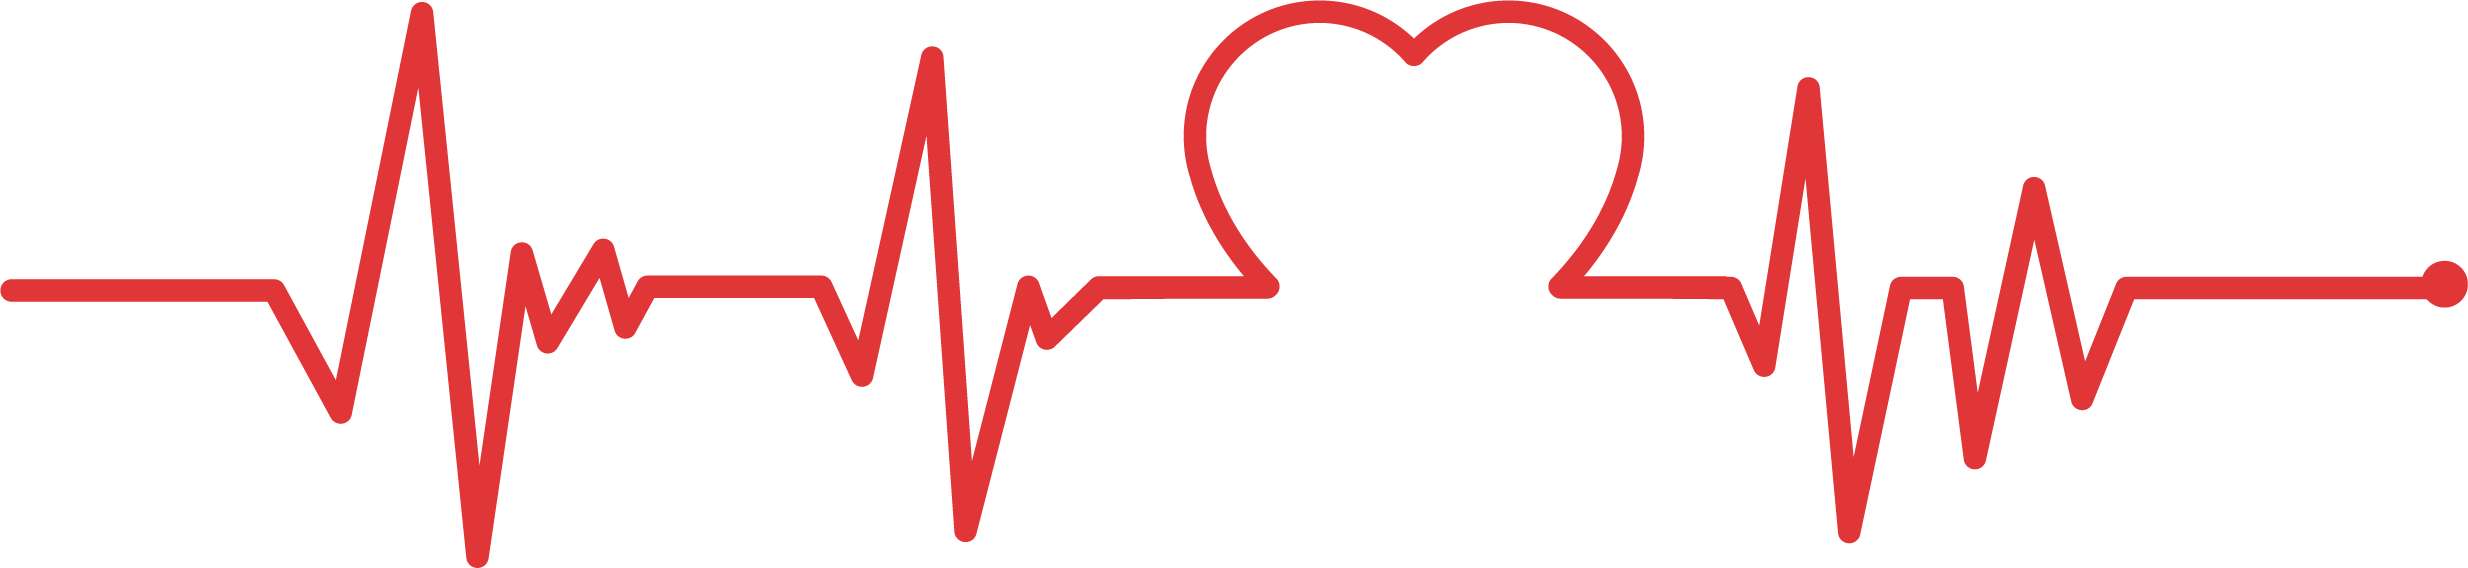 Heartbeat clipart heart rate, Heartbeat heart rate